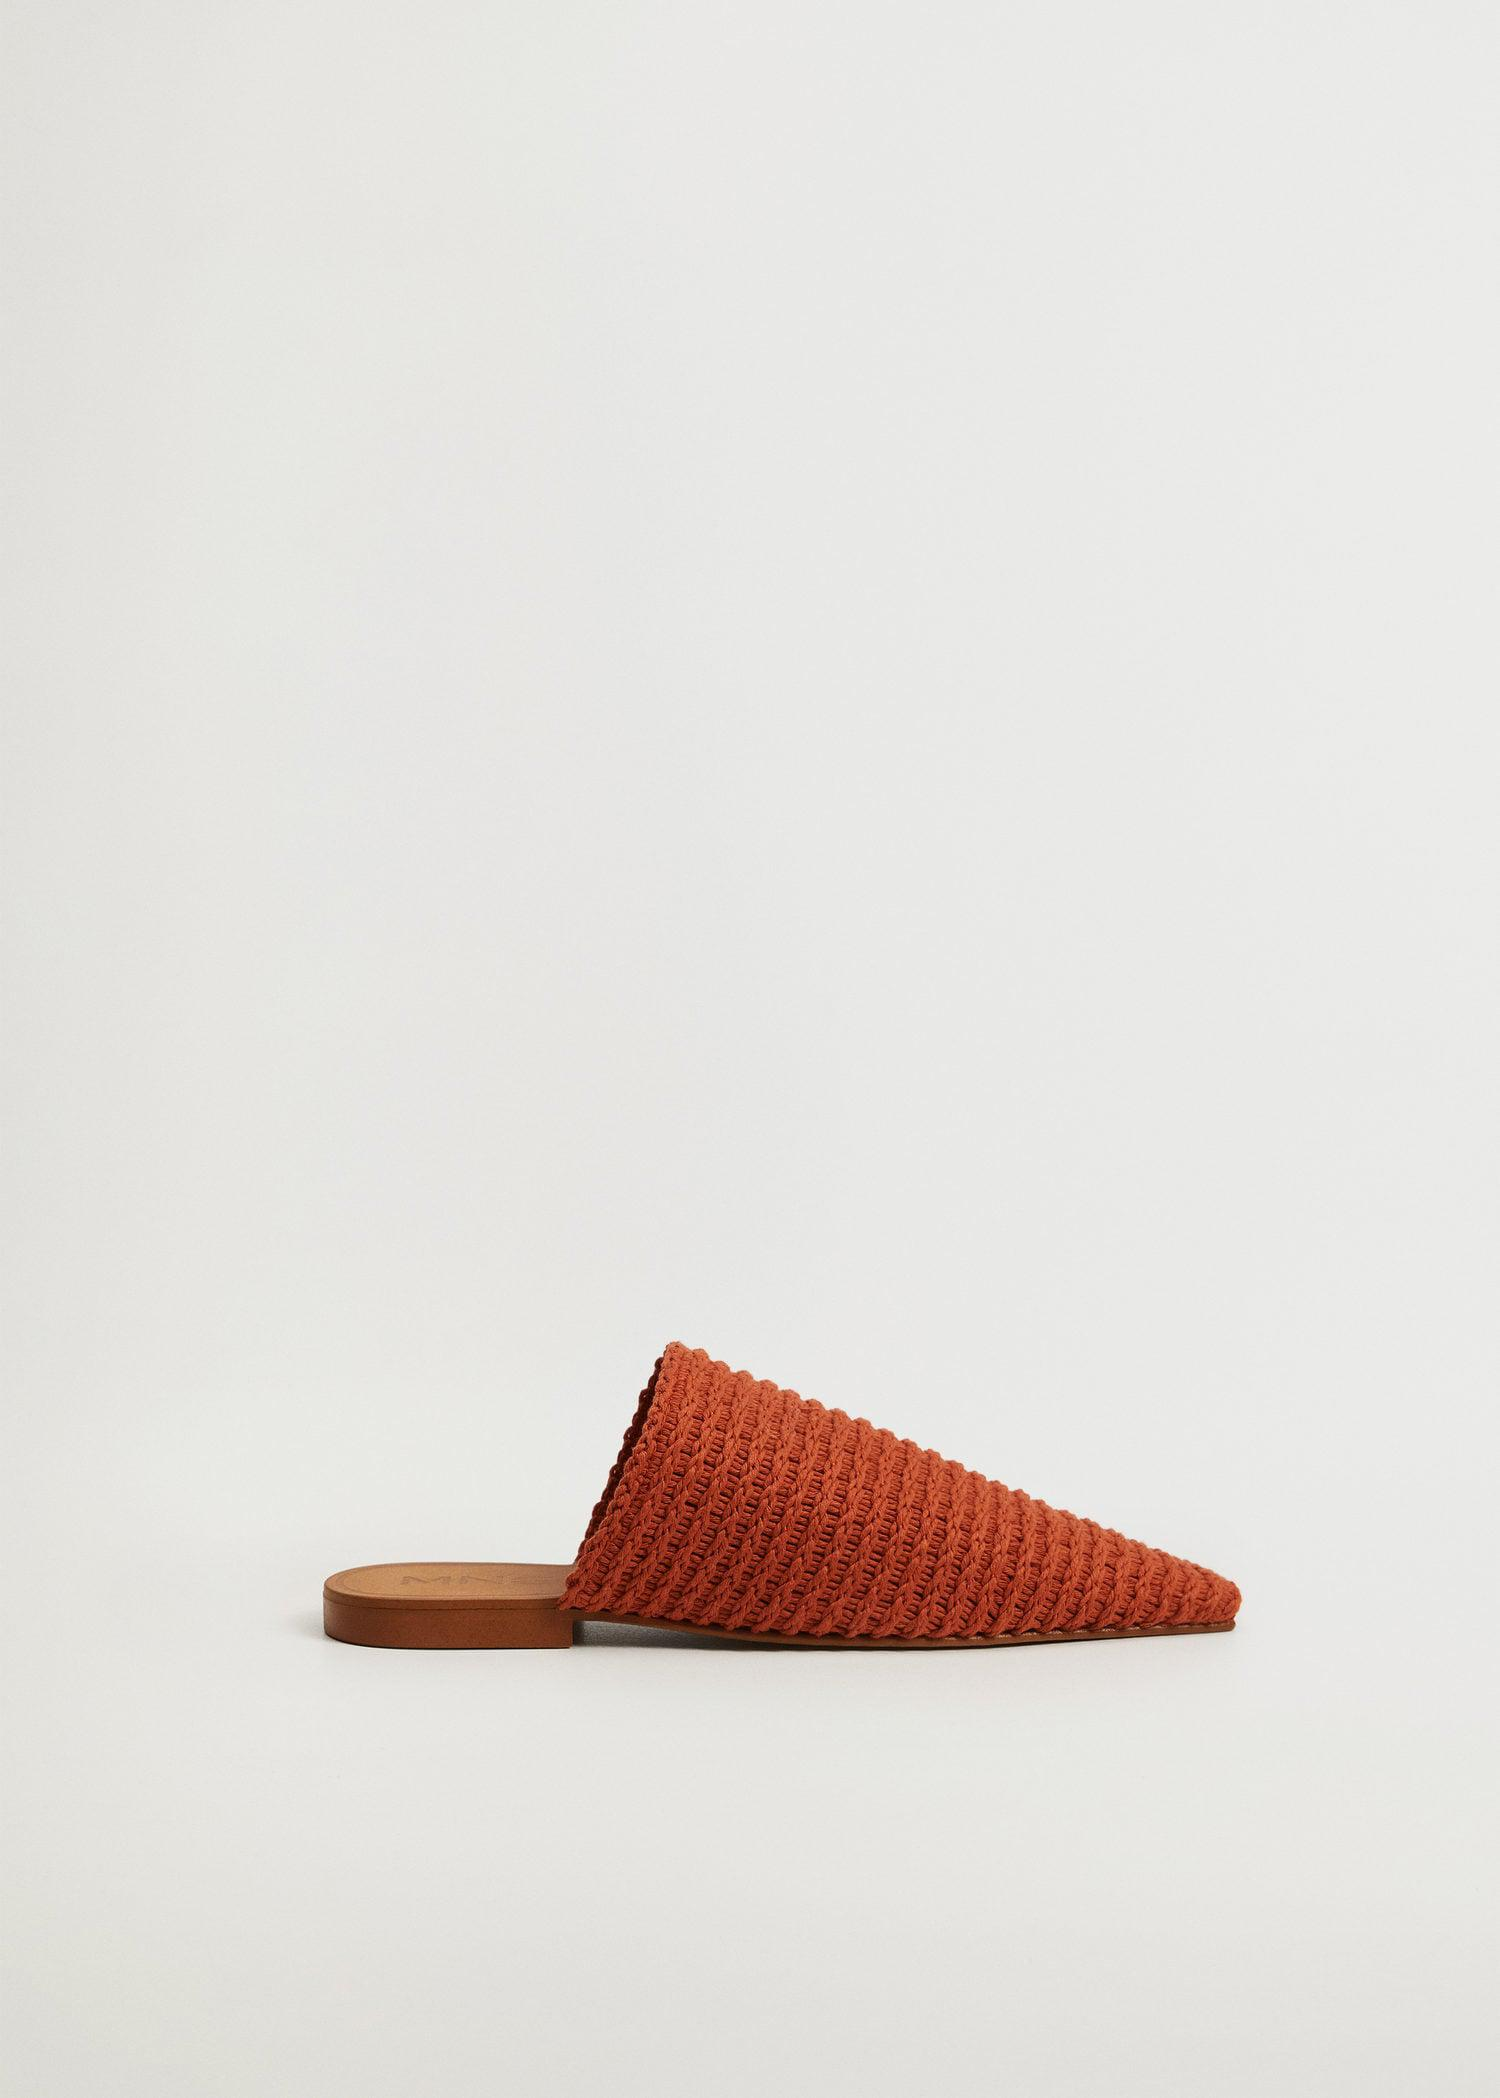 Recycled cotton braided babouche slippers